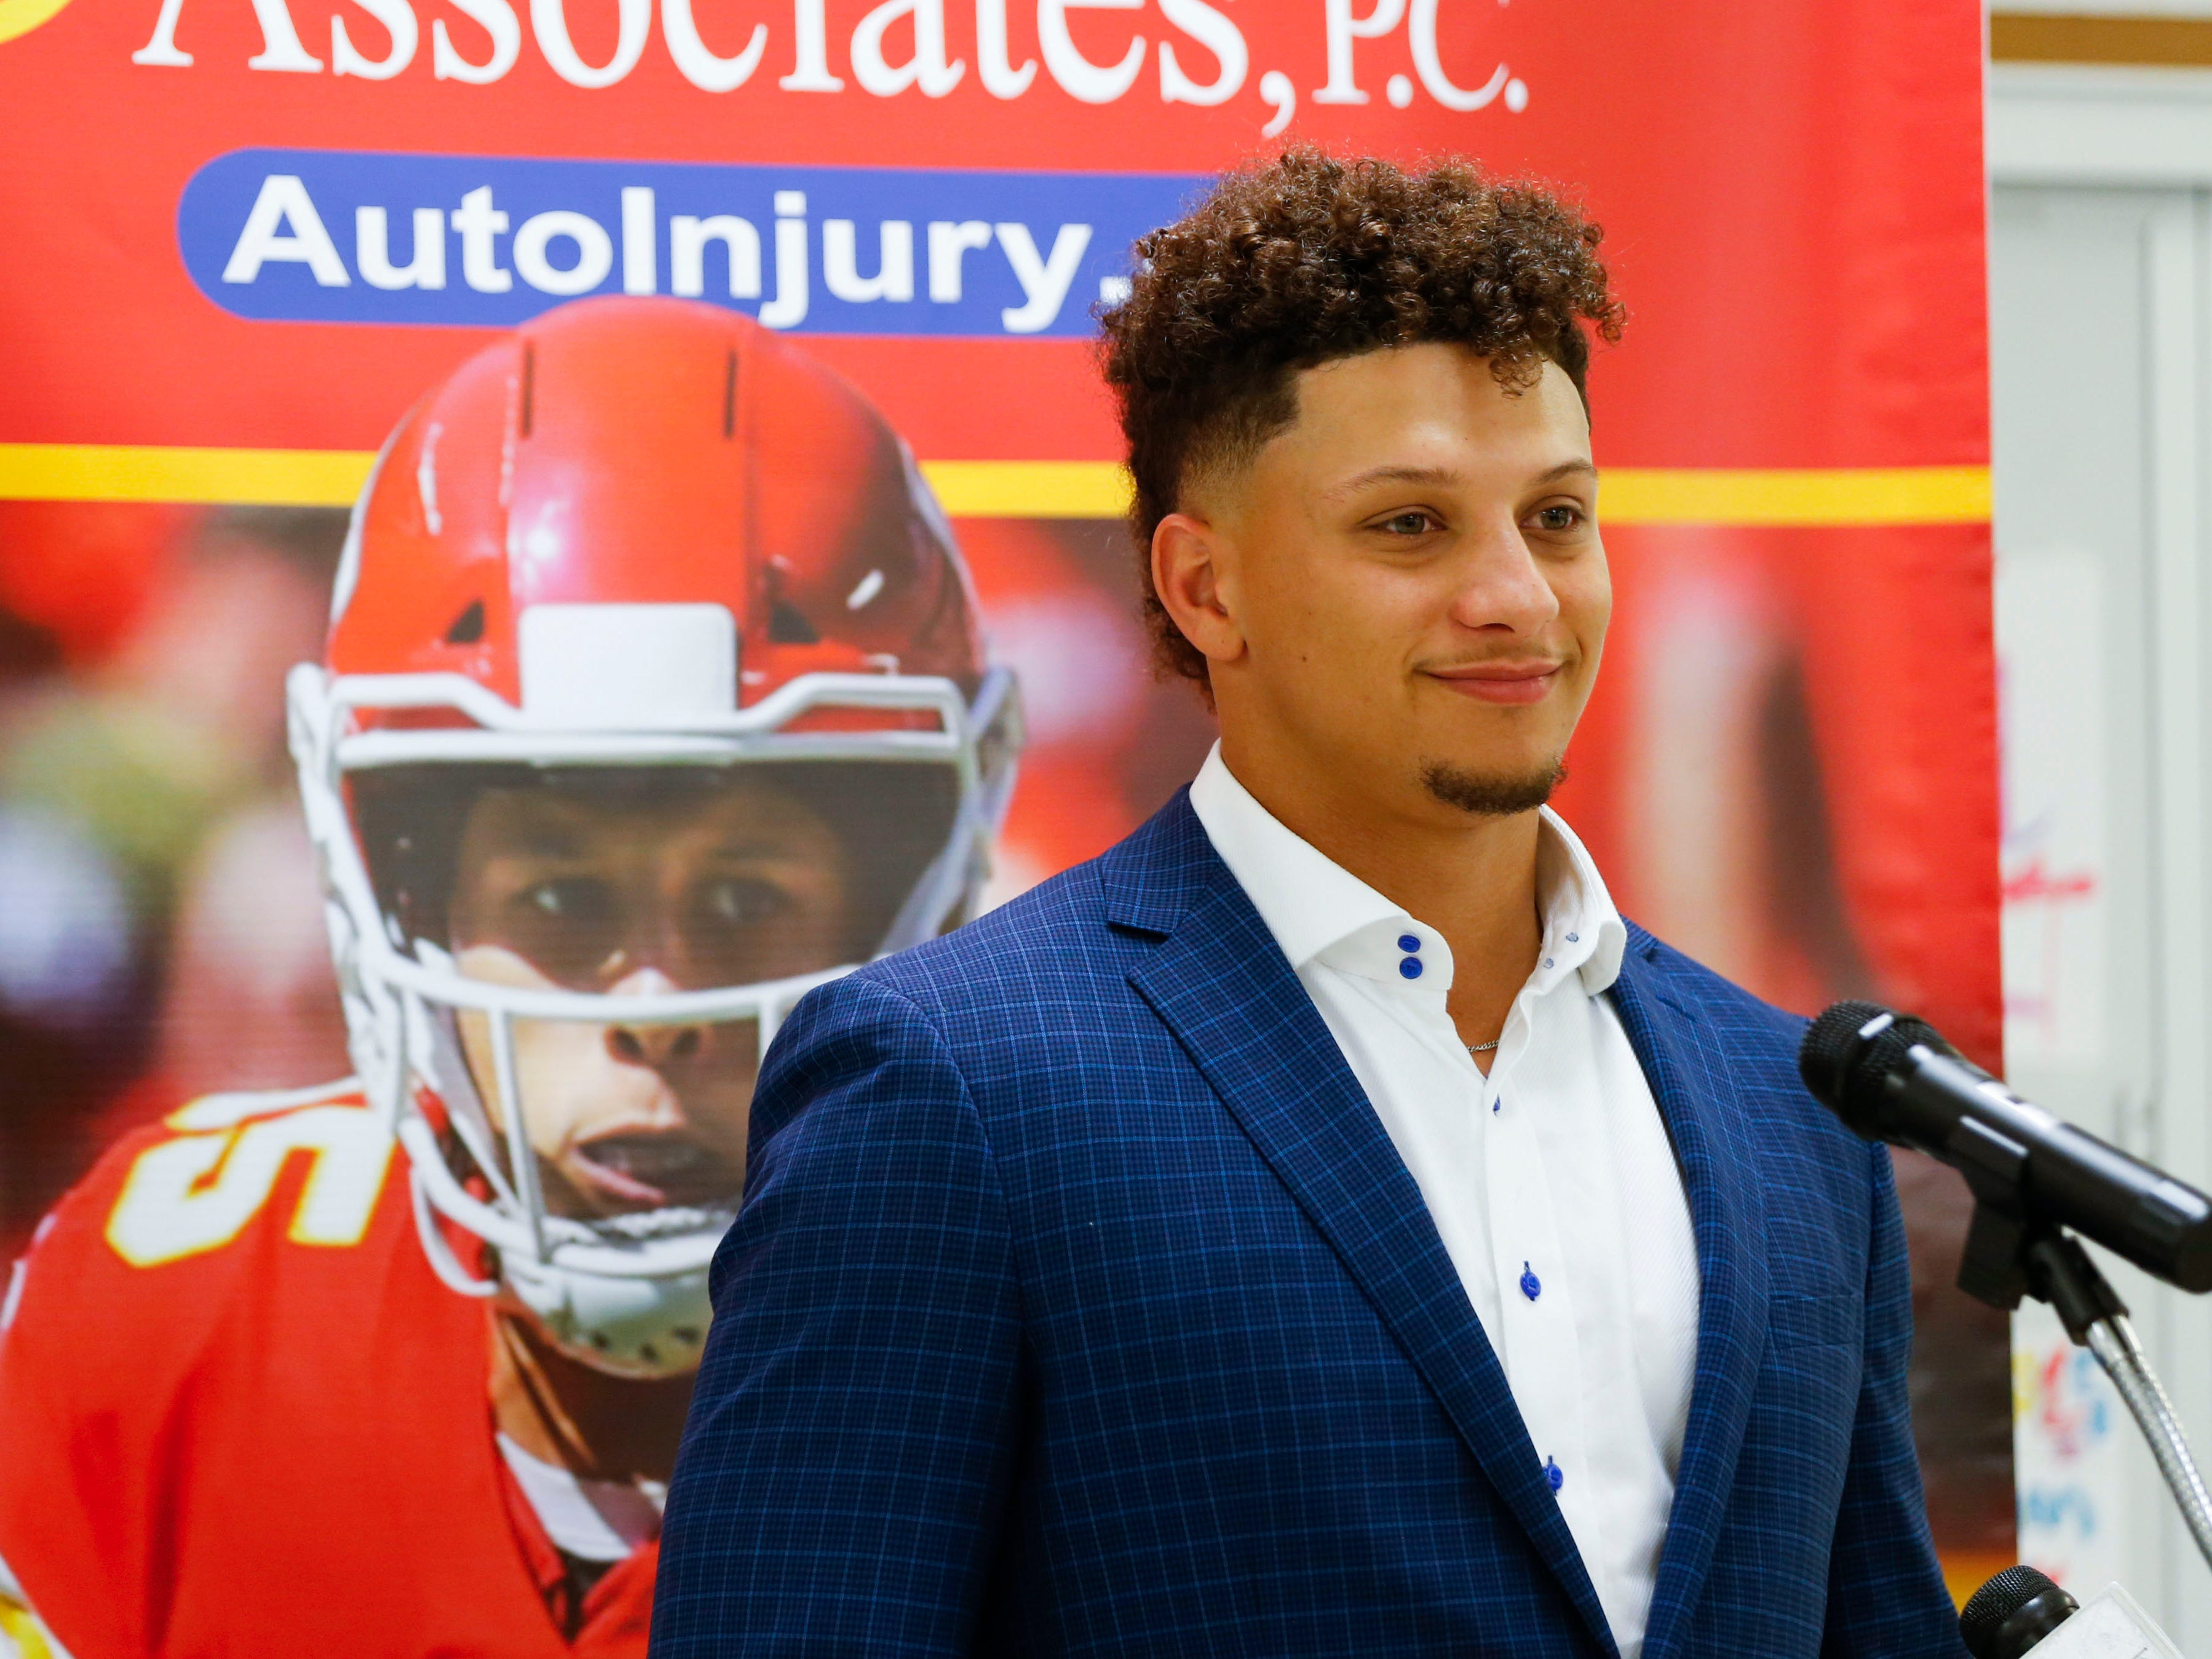 Patrick Mahomes II speaks at a press conference at the Boys & Girls Clubs of Springfield before speaking at the annual 23rd Annual Steak & Steak Dinner on Tuesday, April 9, 2019.